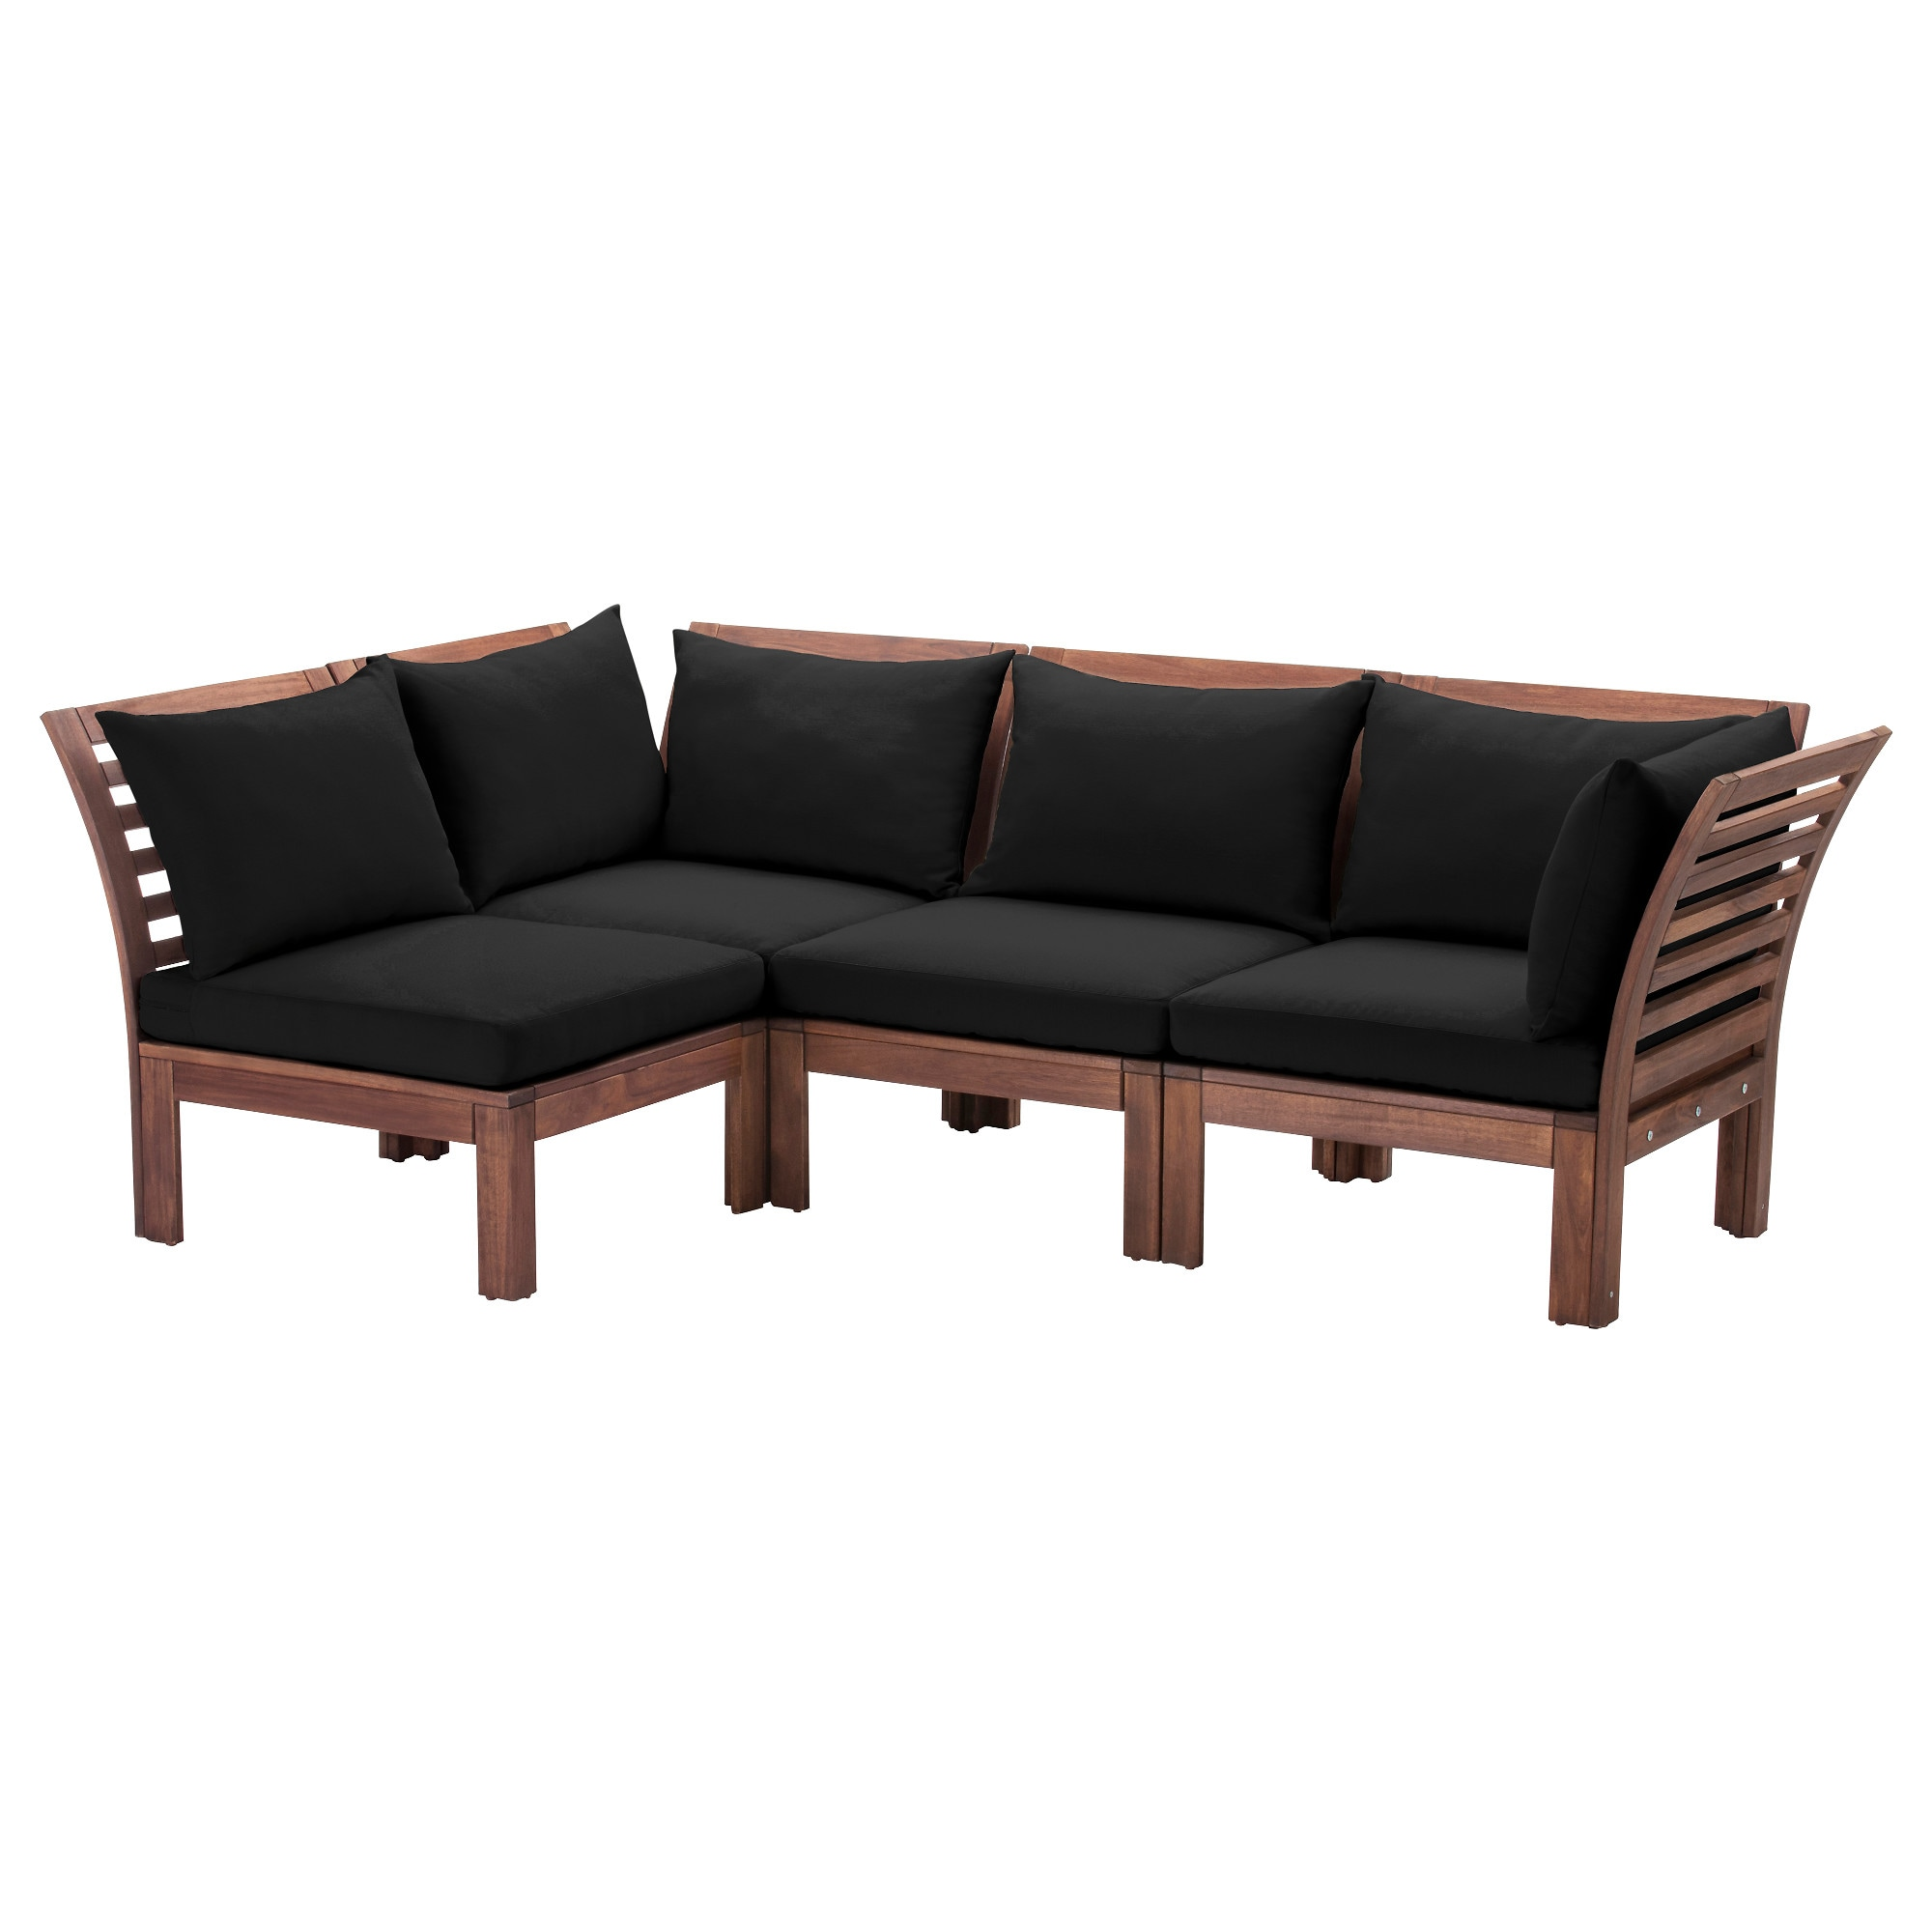 Lounge sofa outdoor  Lounging & relaxing furniture - IKEA